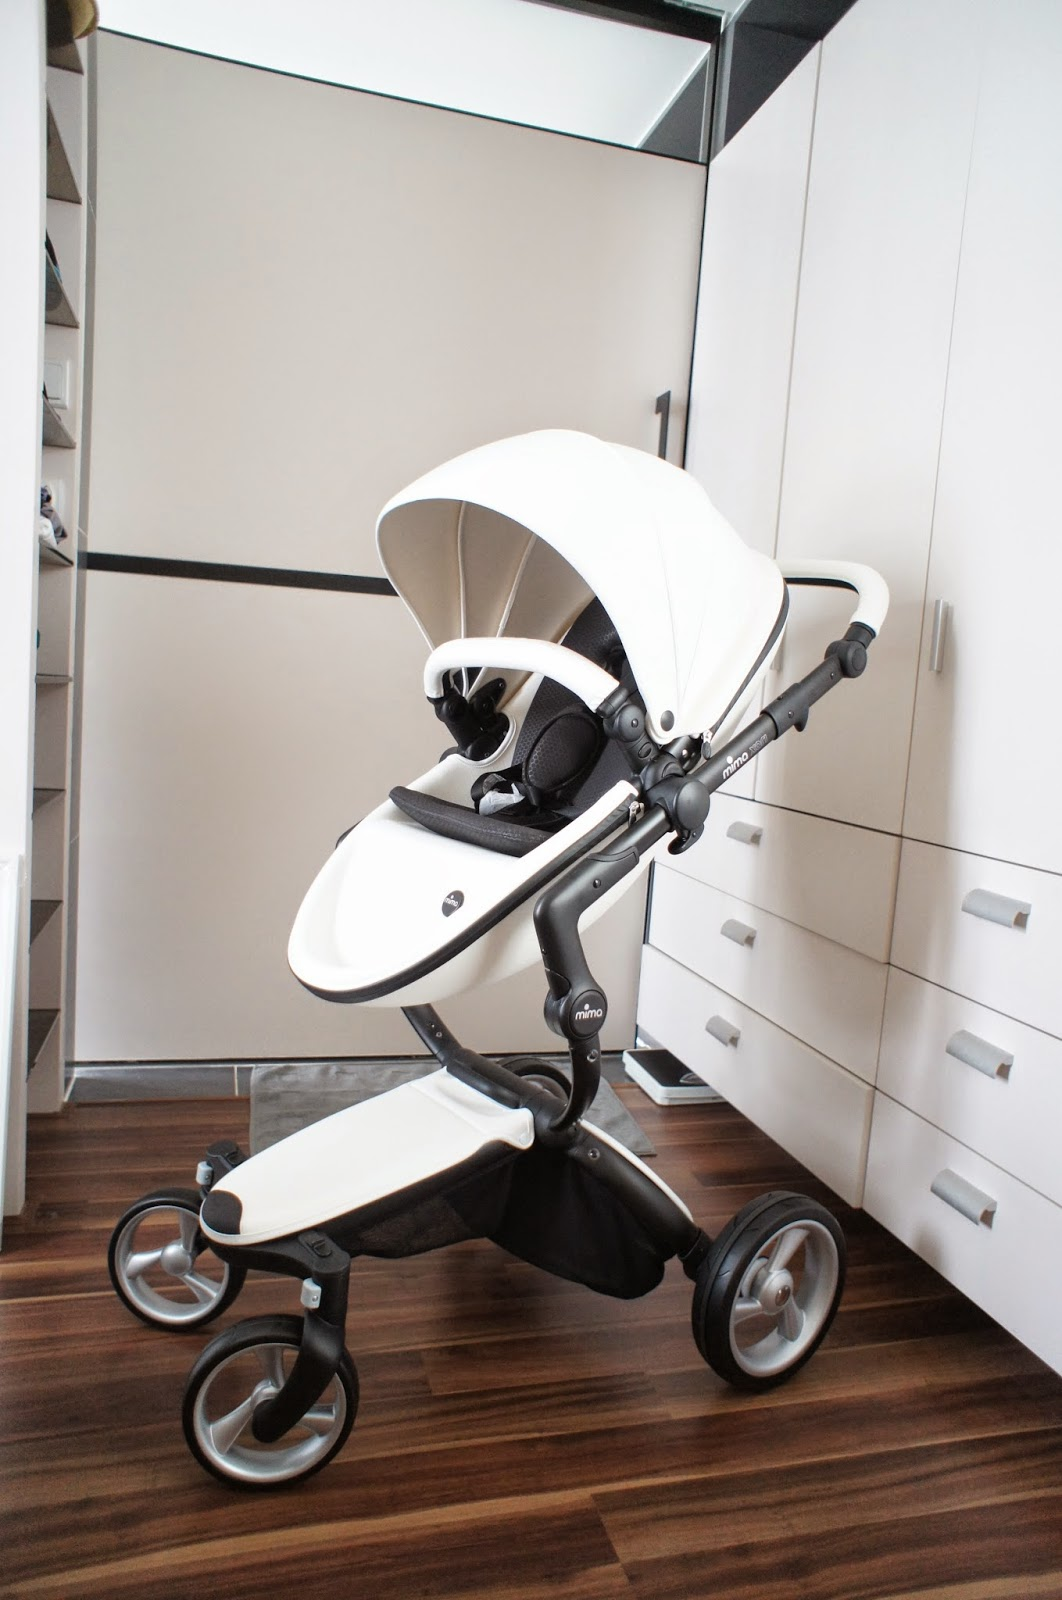 Mima Xari Stroller Harga Michiekins Fashion Lifestyle And Mummy Blog Pregnancy